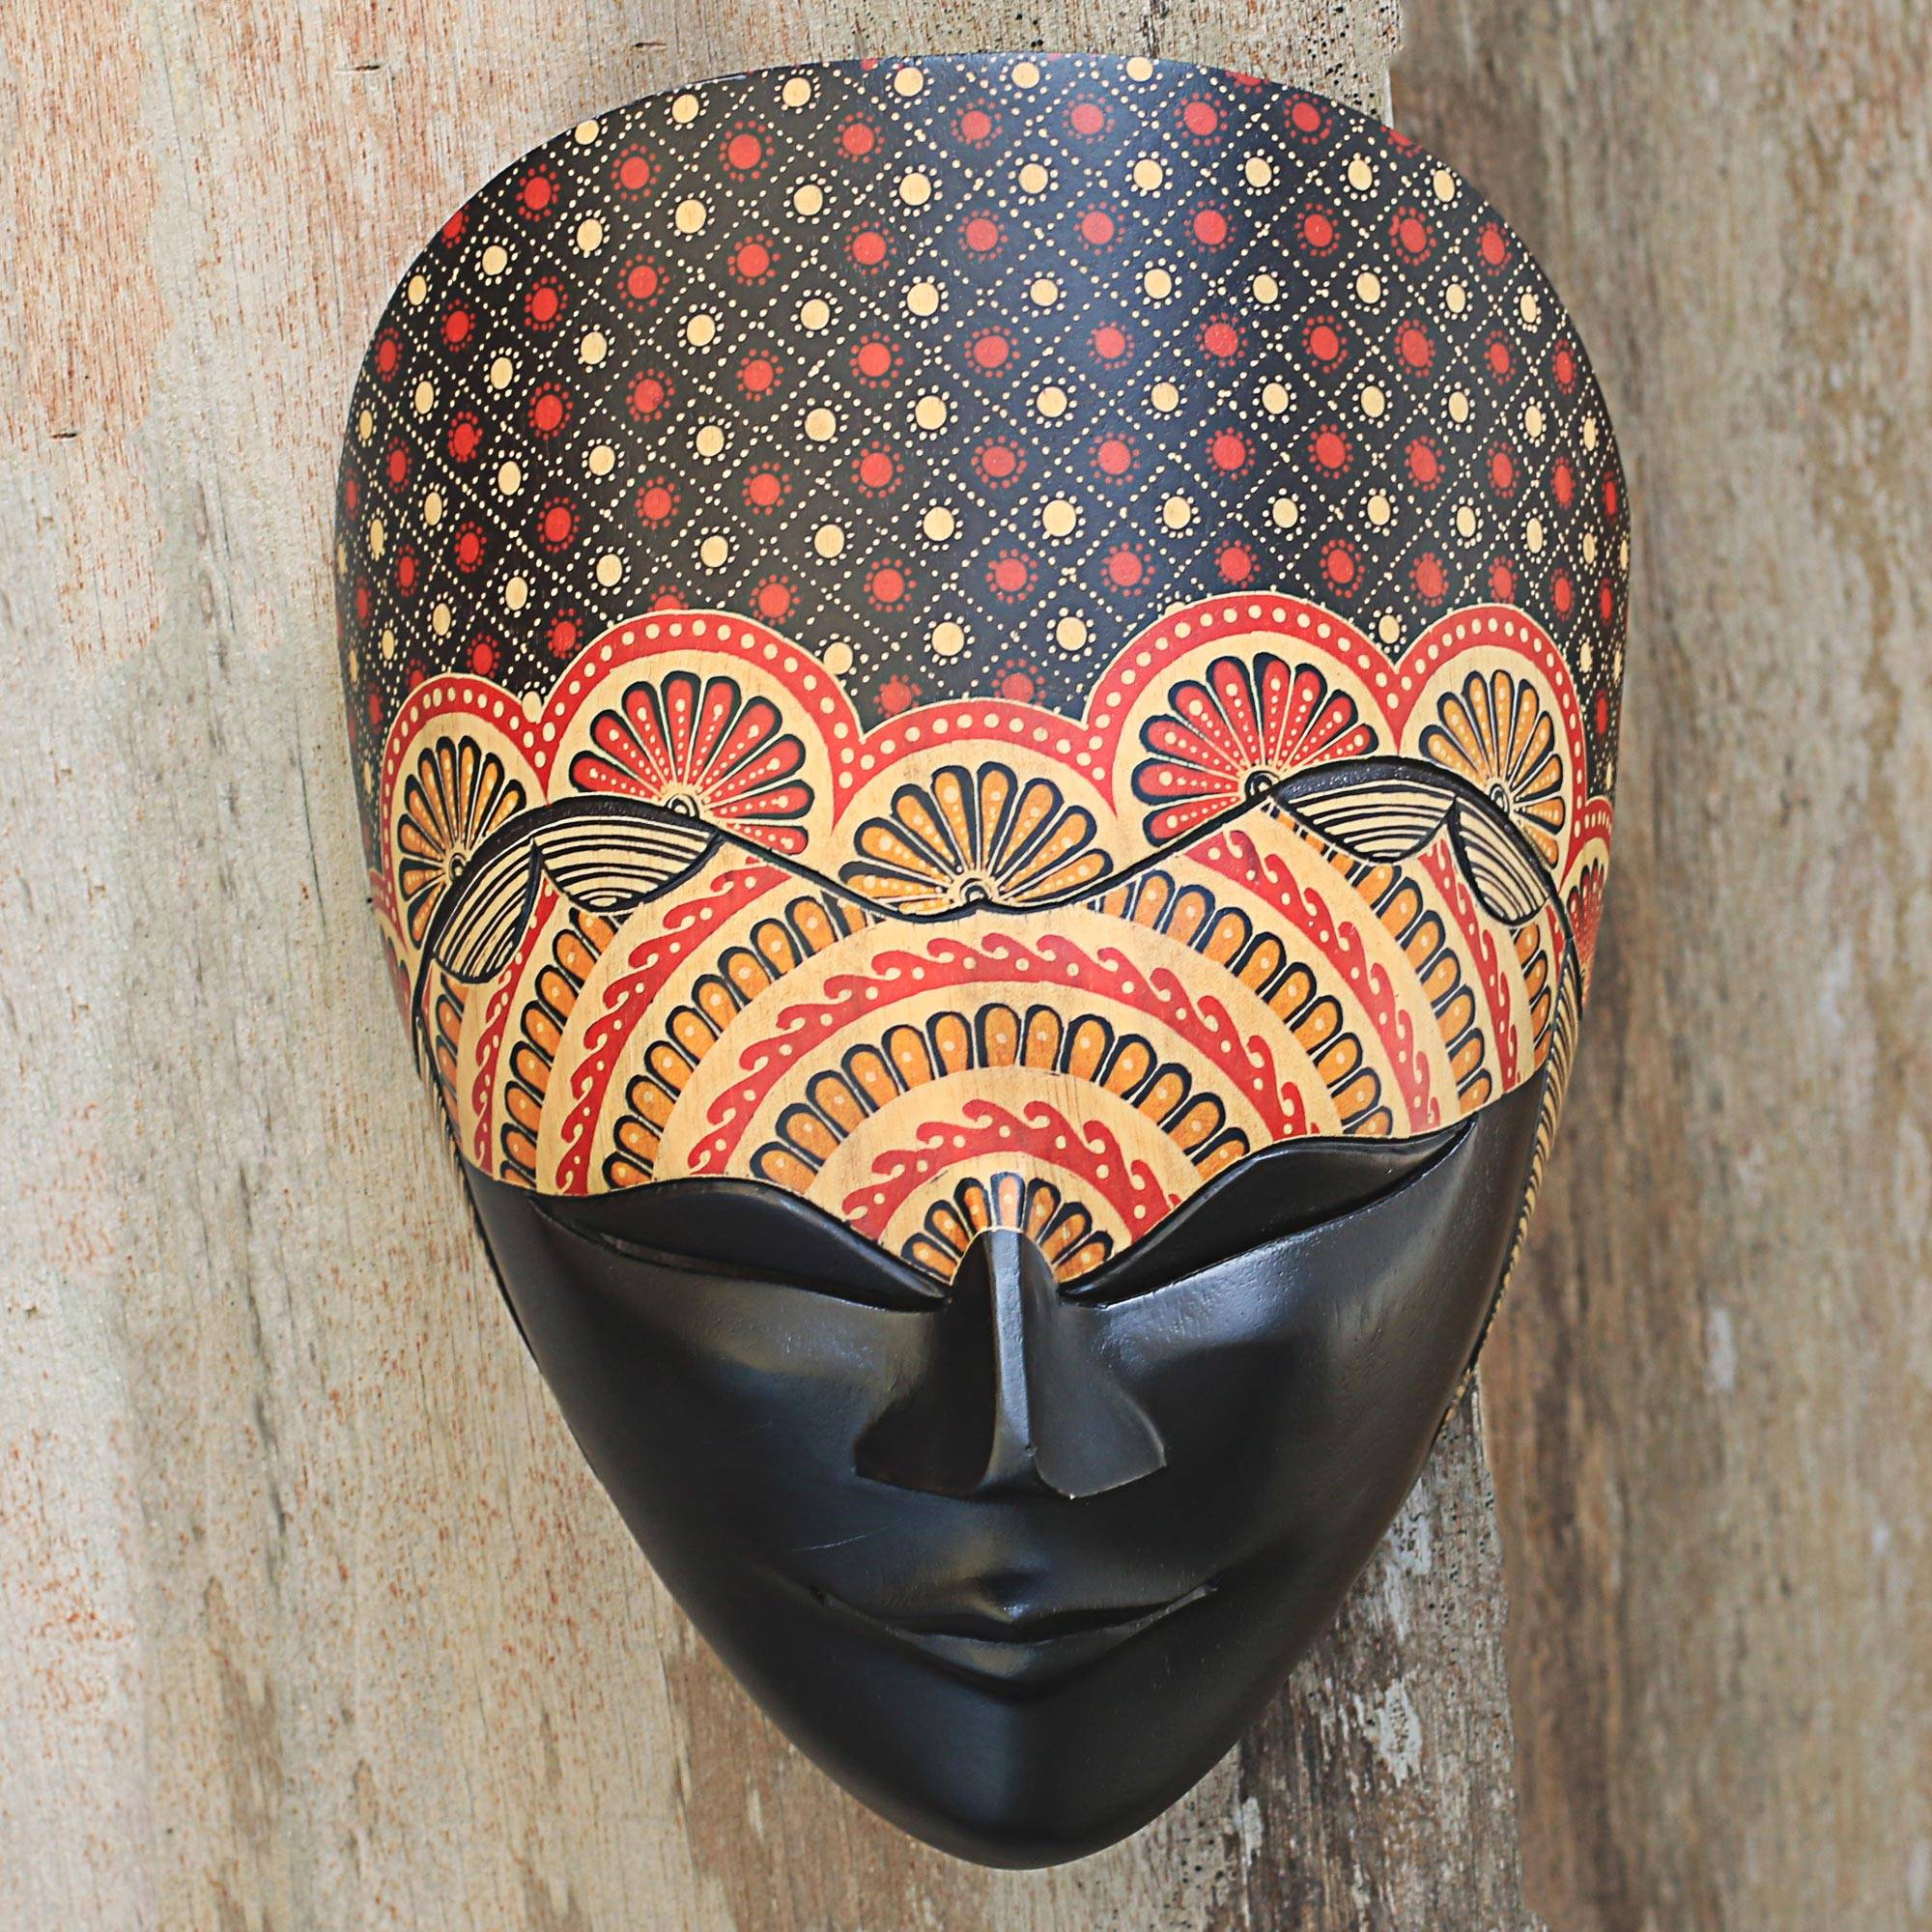 Artisan Crafted Wall Mask Adorned With Batik Flowers On Wood Face Of Beauty And Calmness Novica